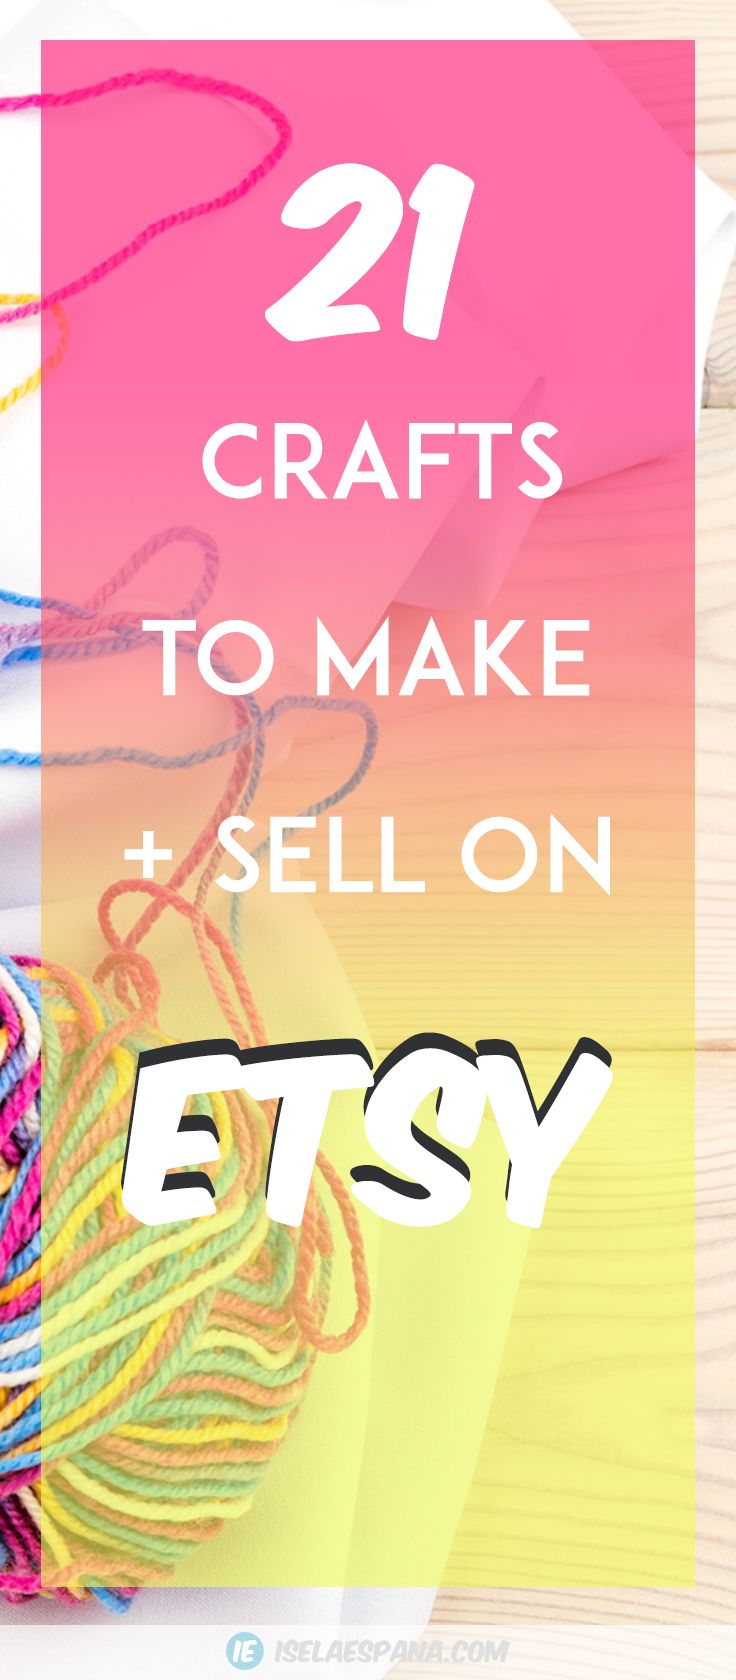 What to sell on Etsy - 21 Crafts to make and sell from home #craftstosell